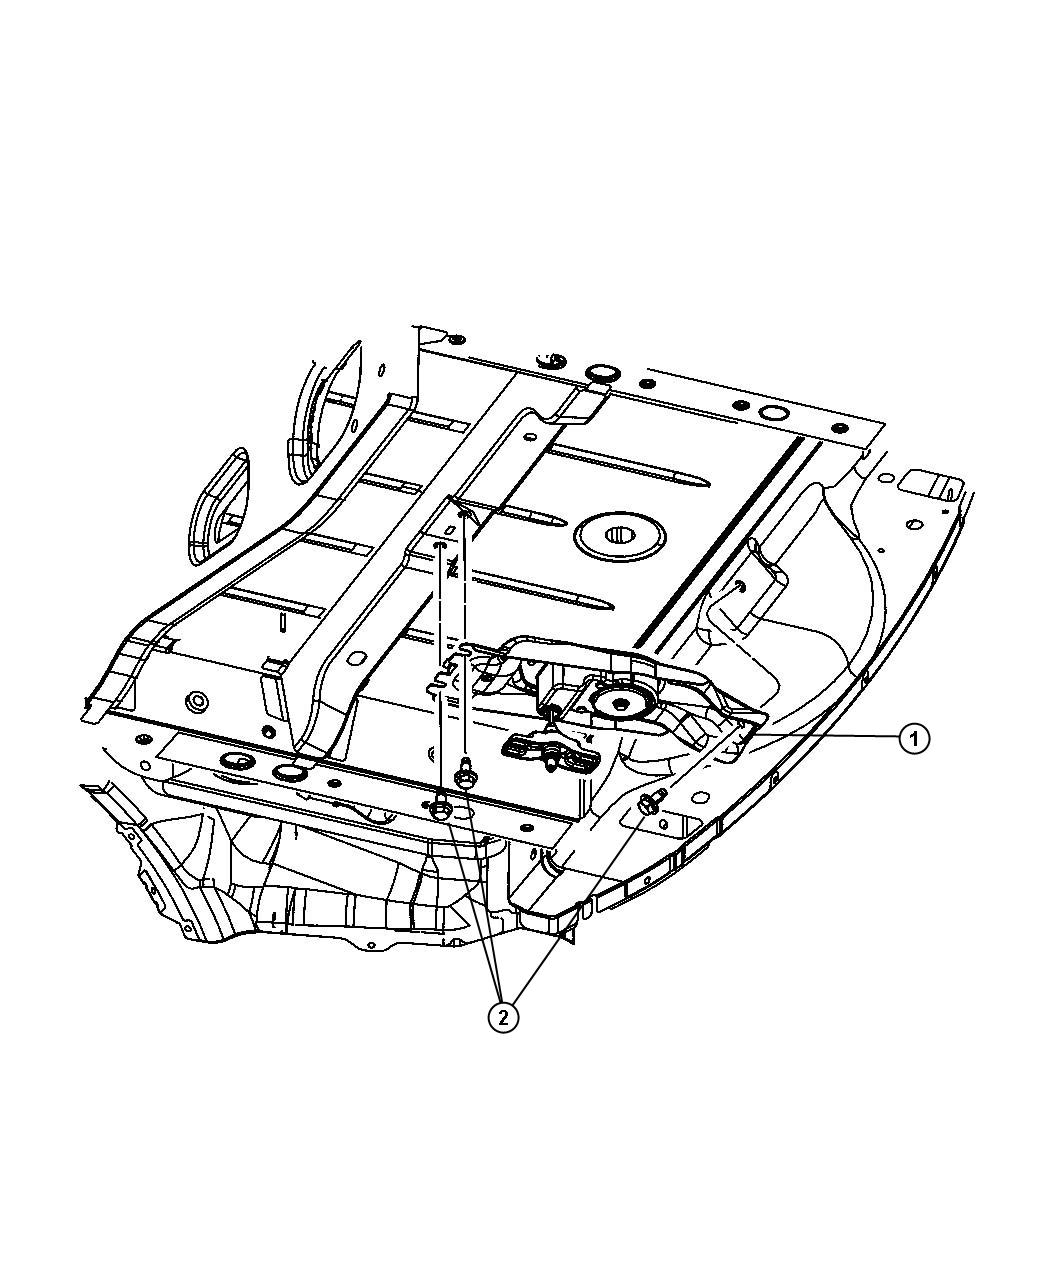 hight resolution of chevy headlight wiring diagram discover your wiring dodge dart body parts diagram 1976 chevy truck headlight